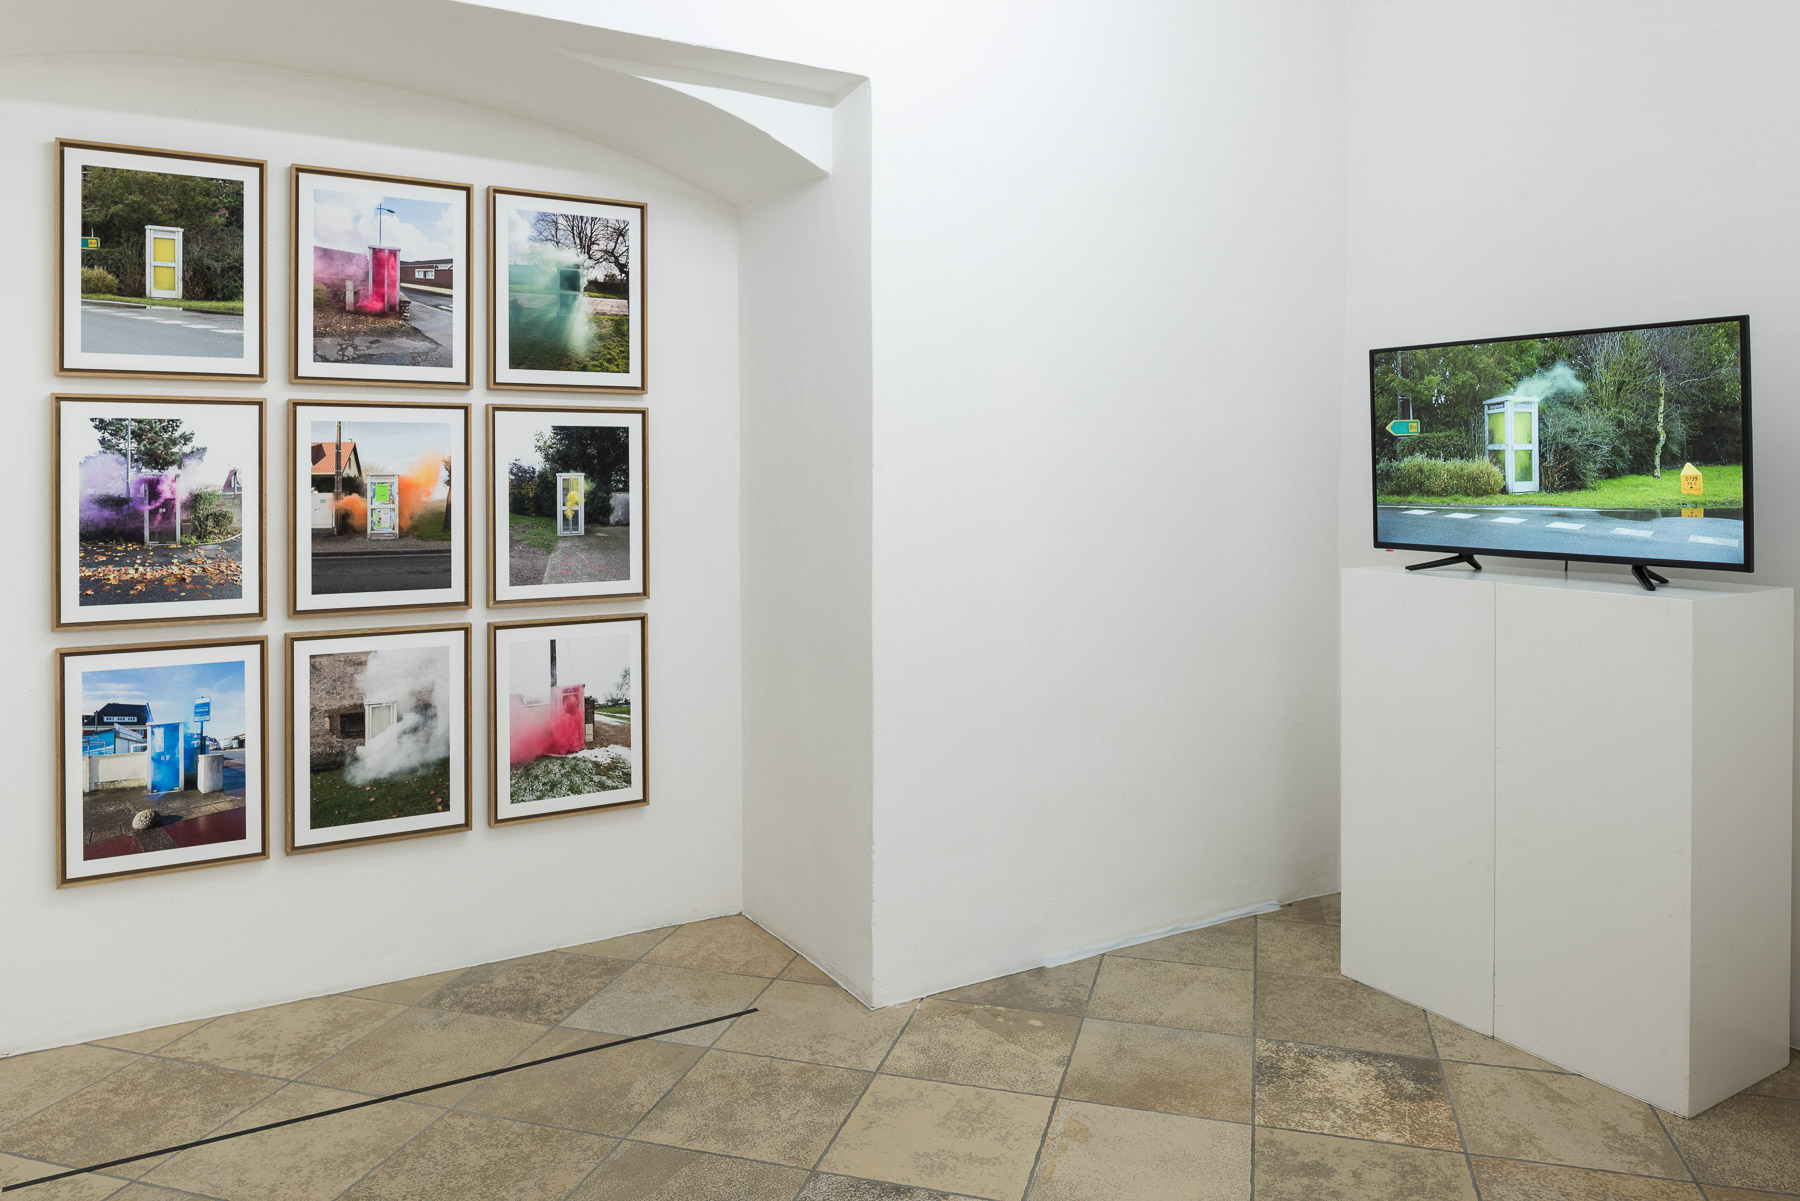 Isabelle-and-Alexis-Luftmuseum-11.jpg